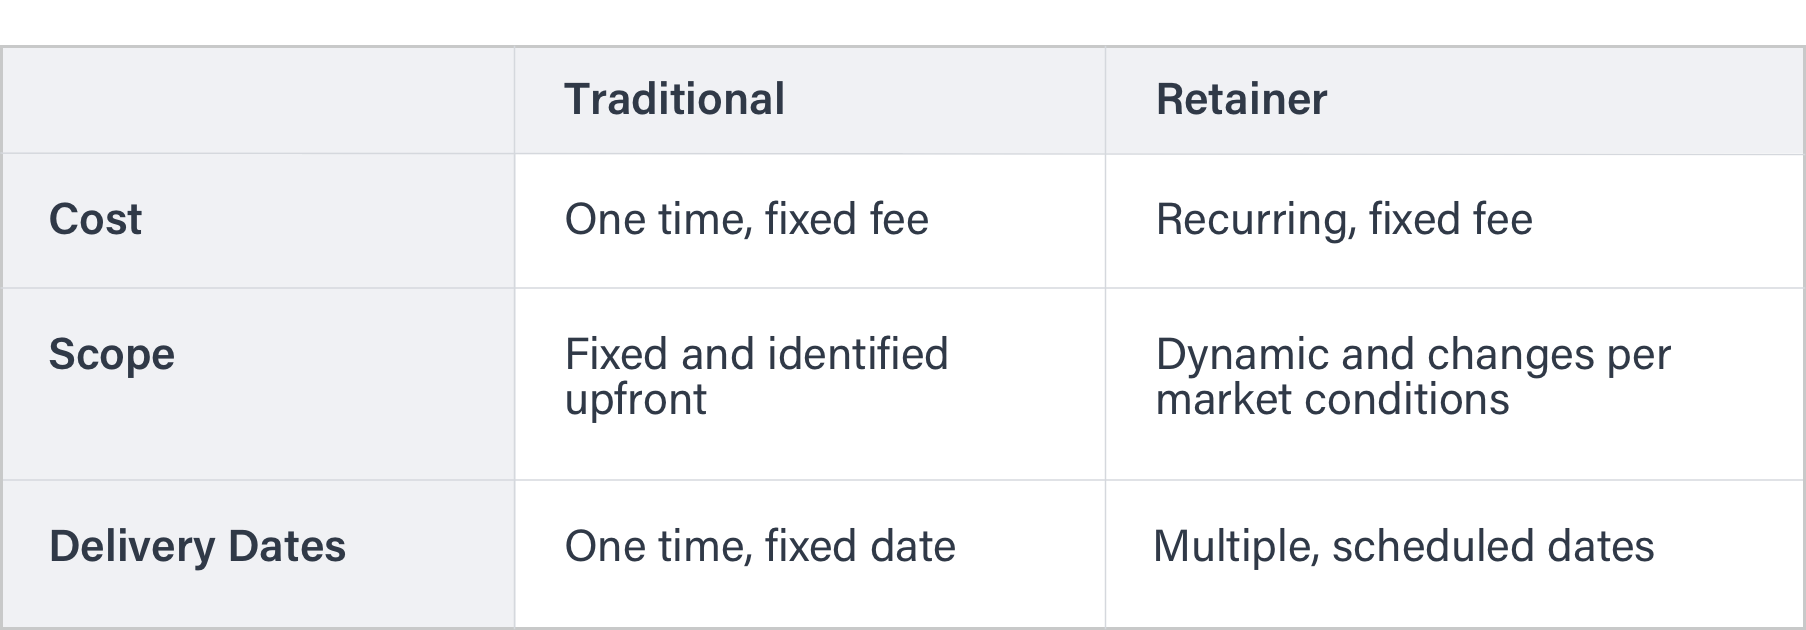 A table comparing aspects of traditional vs retainer based work